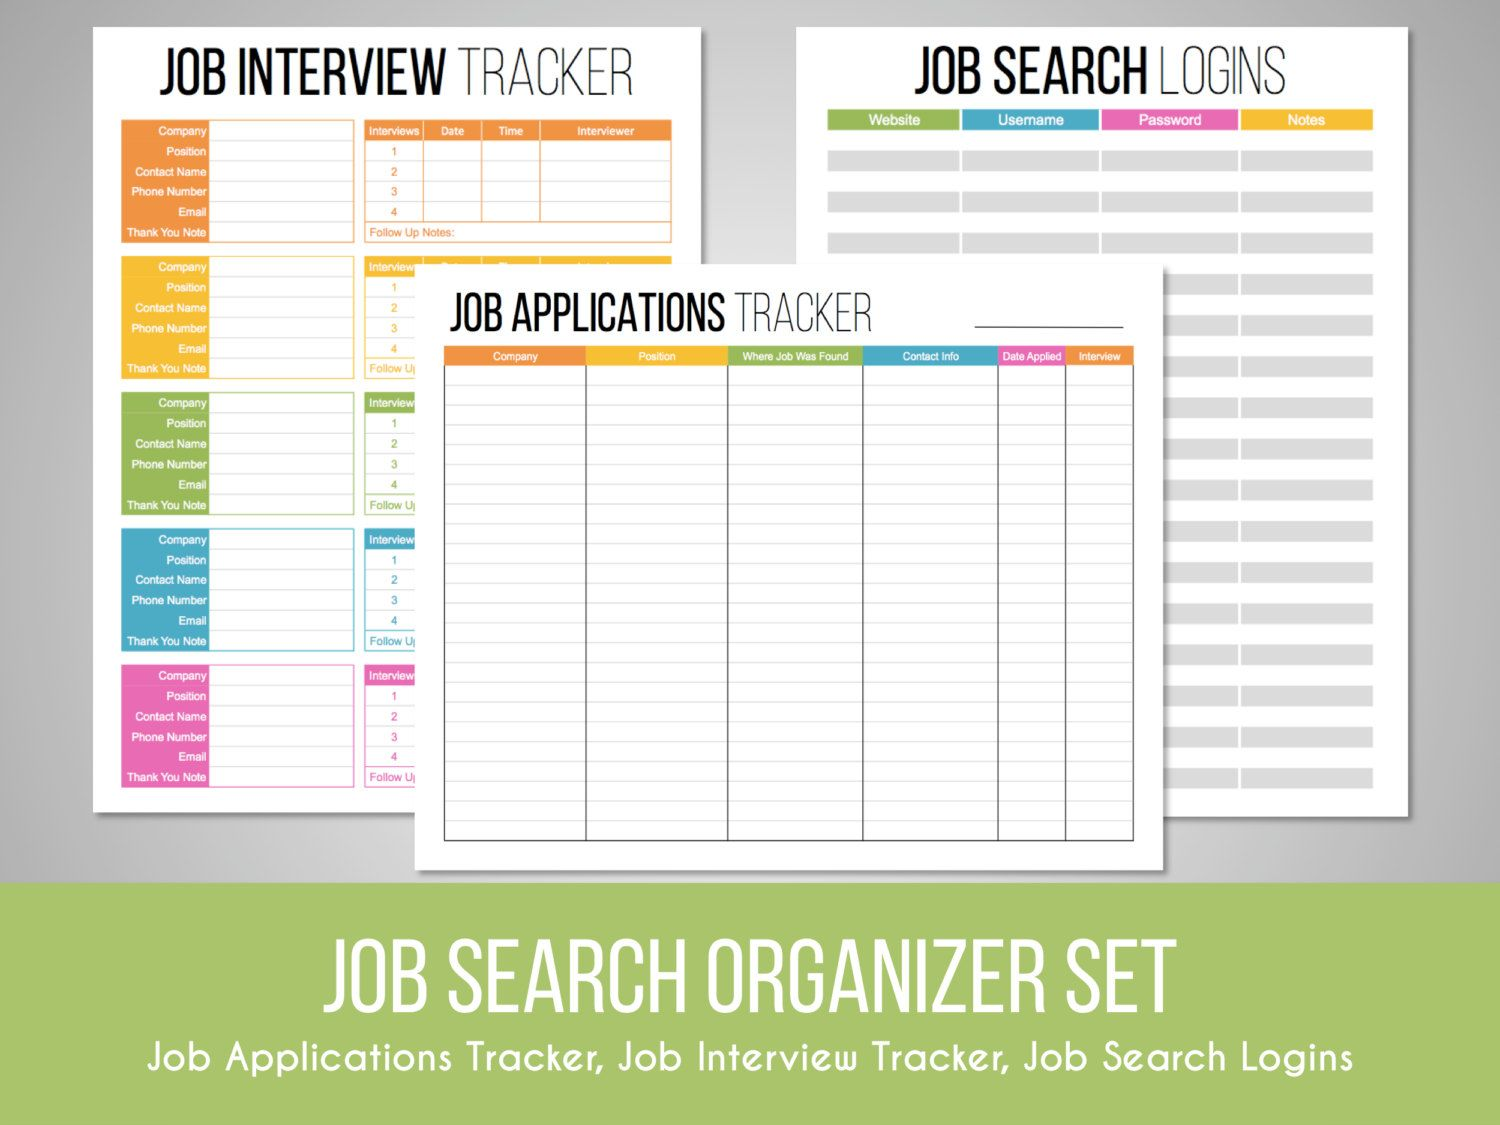 Job Search Organizer Set  Job Search Tracker Interview Tracker